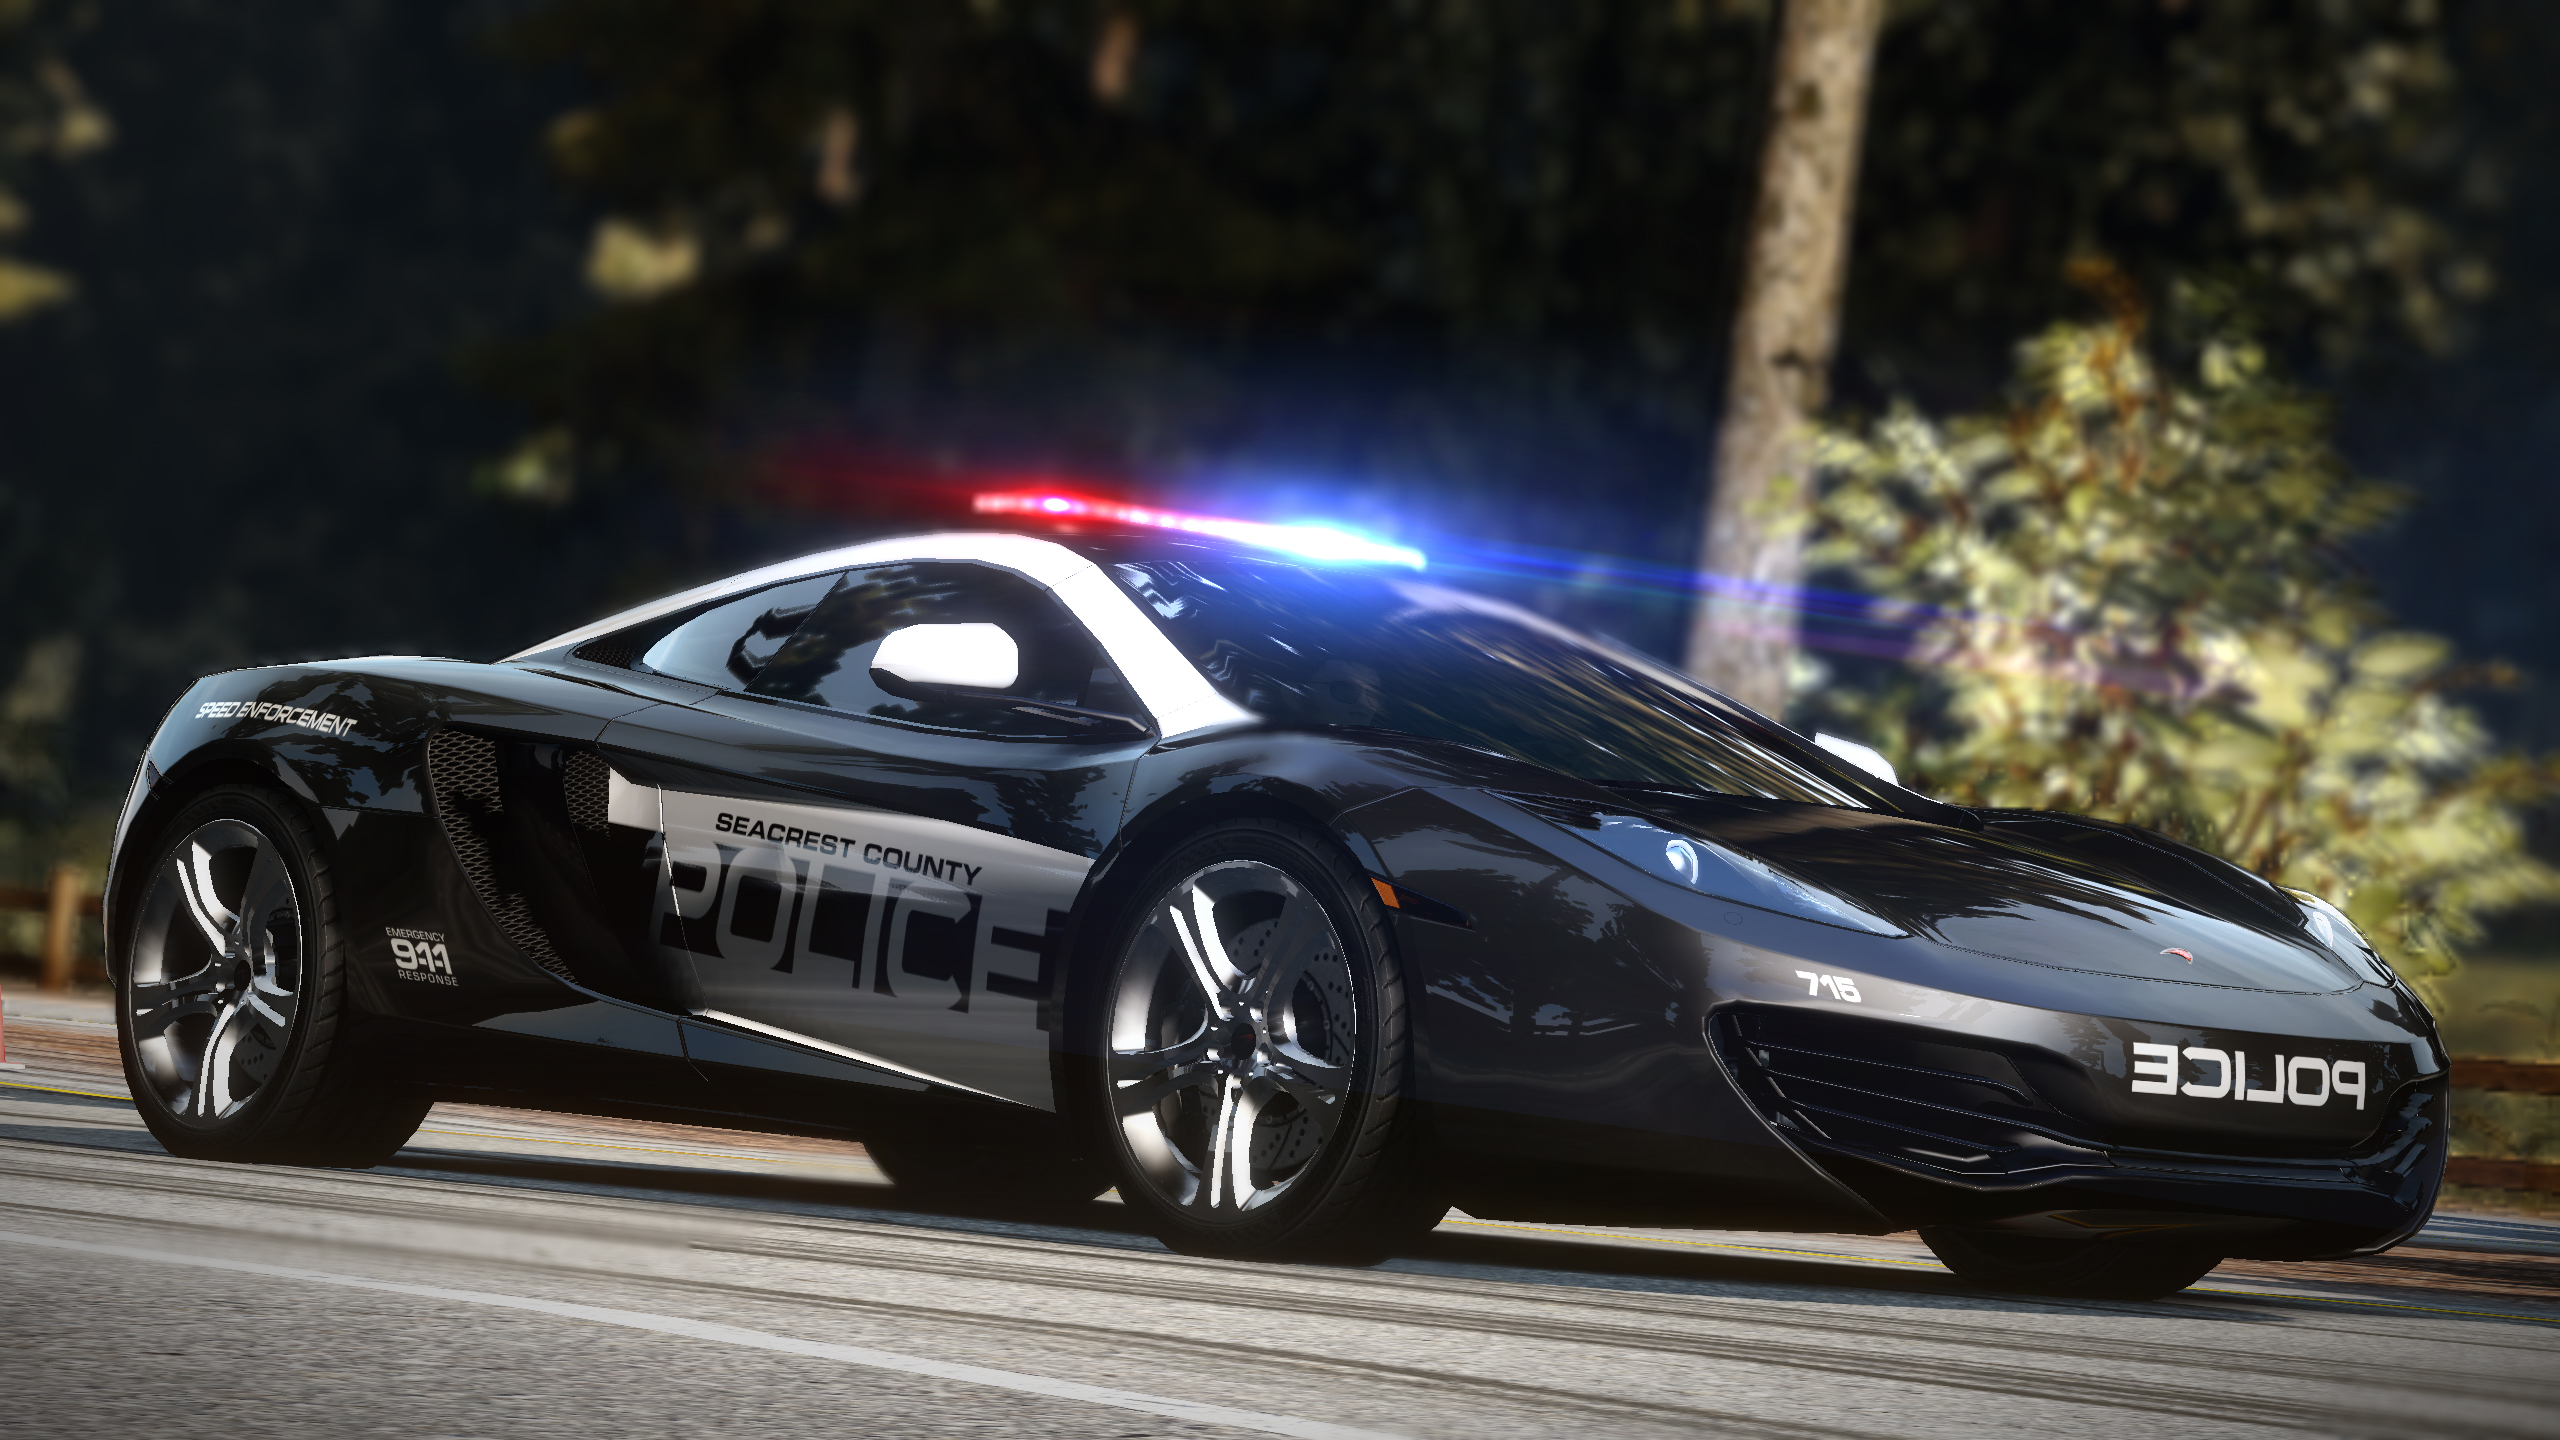 Preview NFS Hot Pursuit Action Shots Bifuteki - Cool car shots